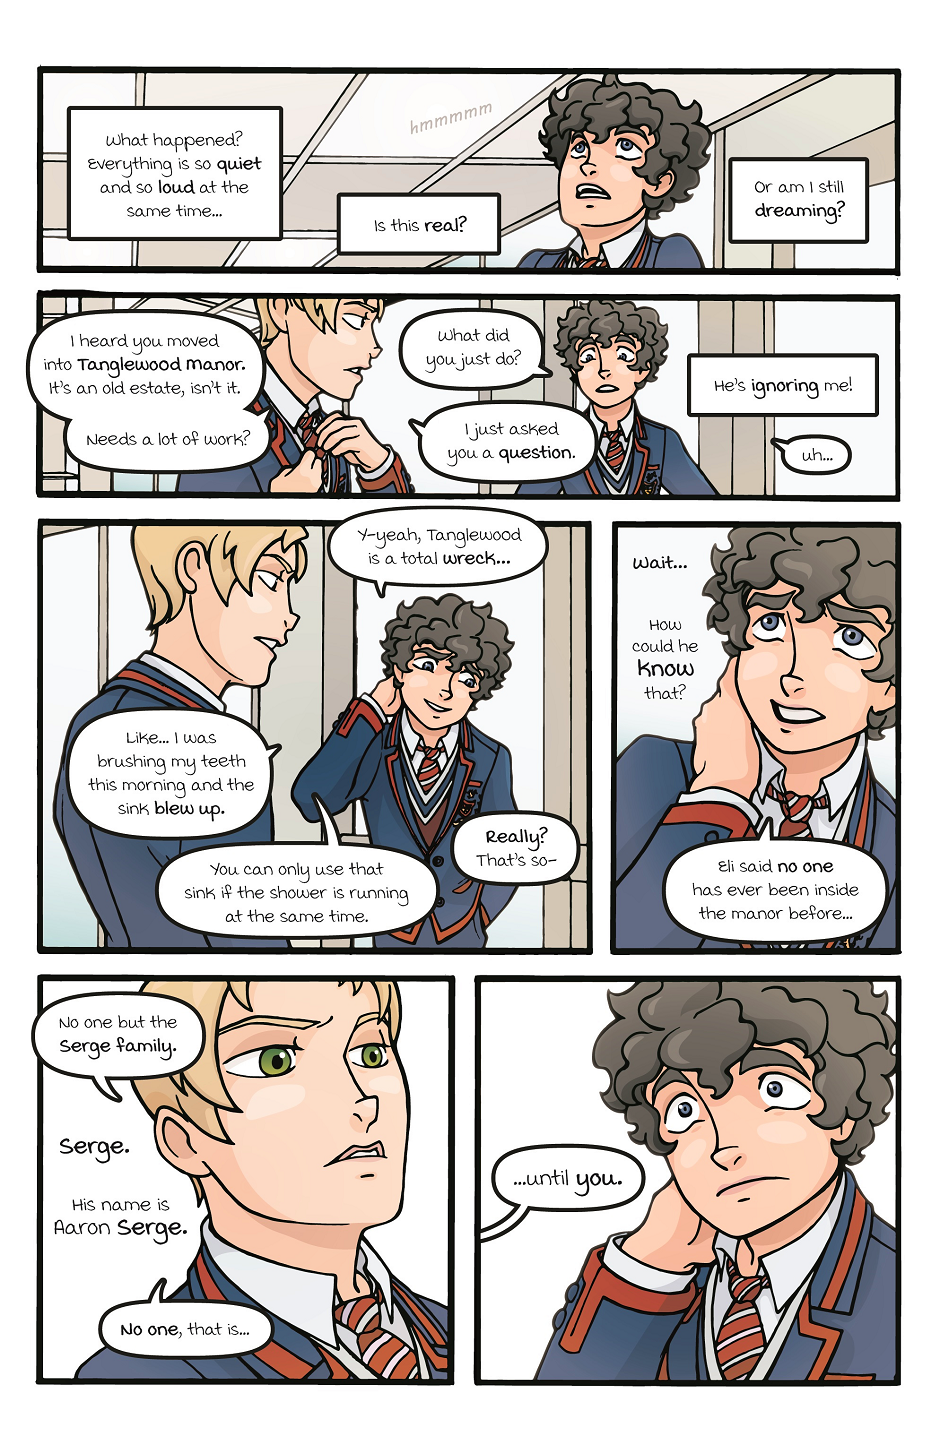 MBB_Ch02-P10_forSS.png